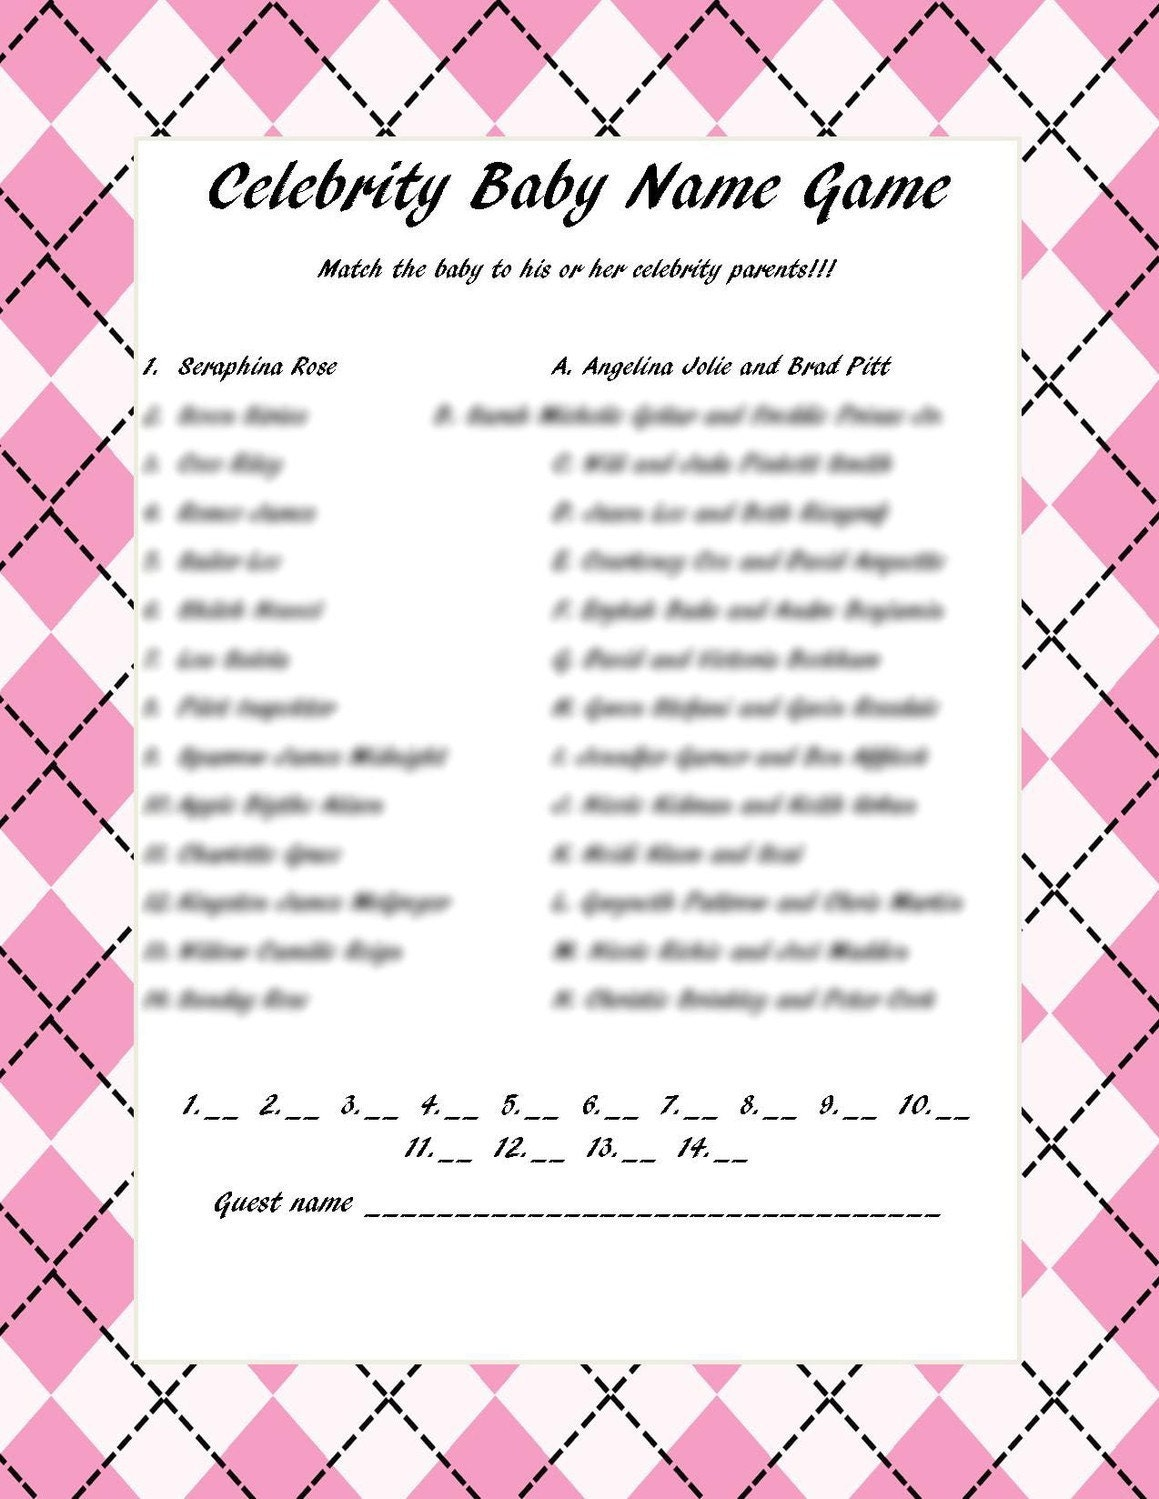 Celebrities Party Rules and Gameplay - thesprucecrafts.com